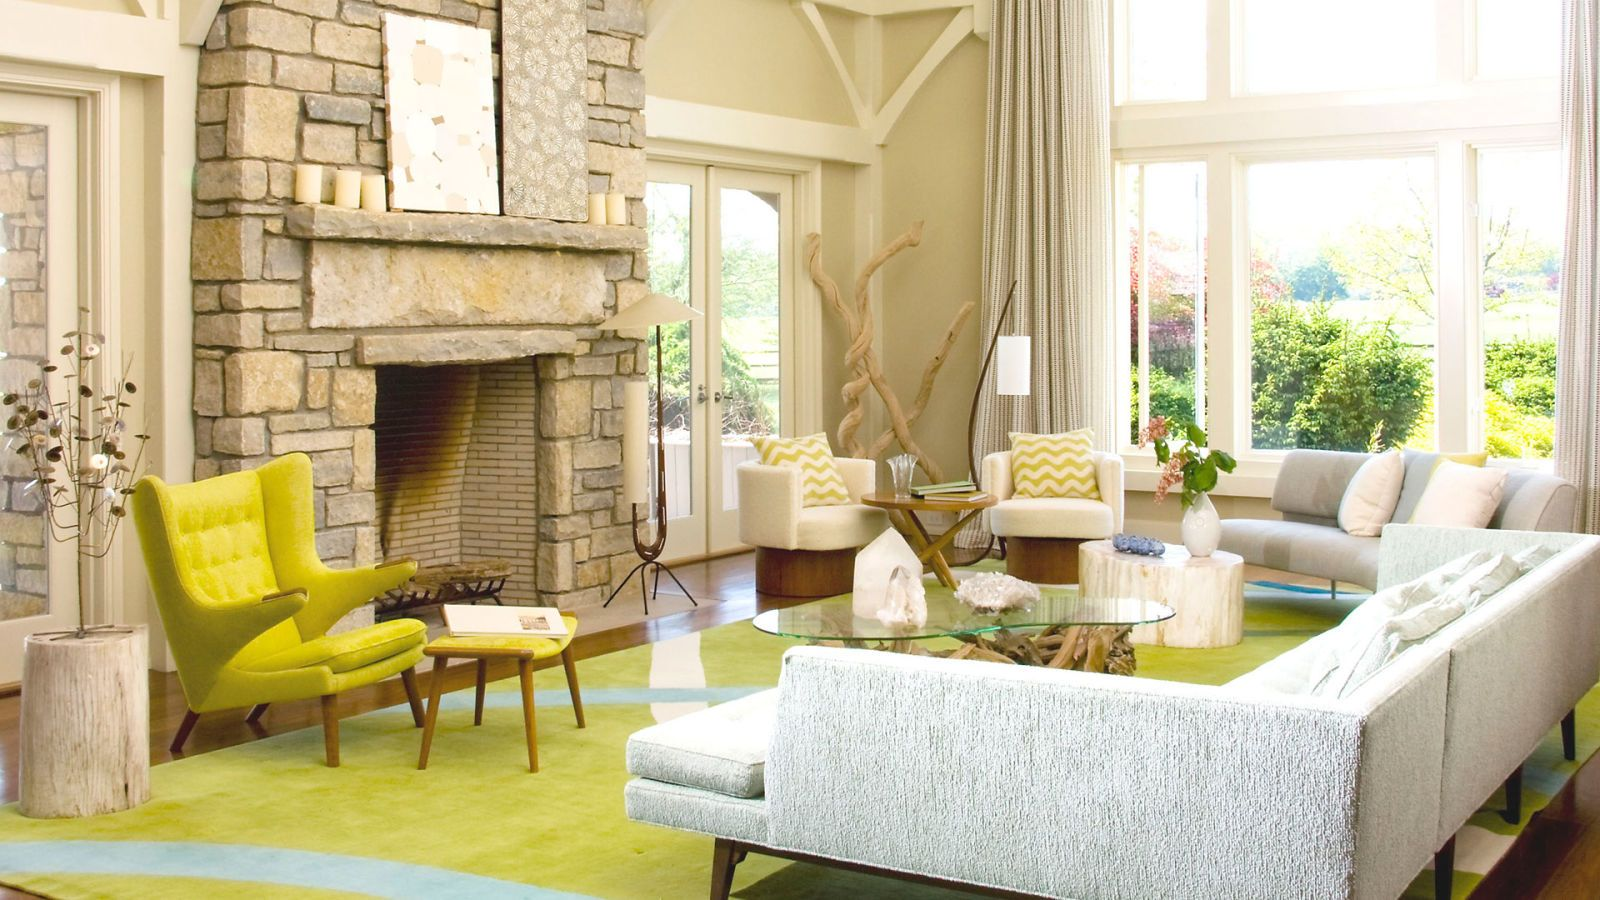 Colorful Home Decor - How to Add Color to Your Room